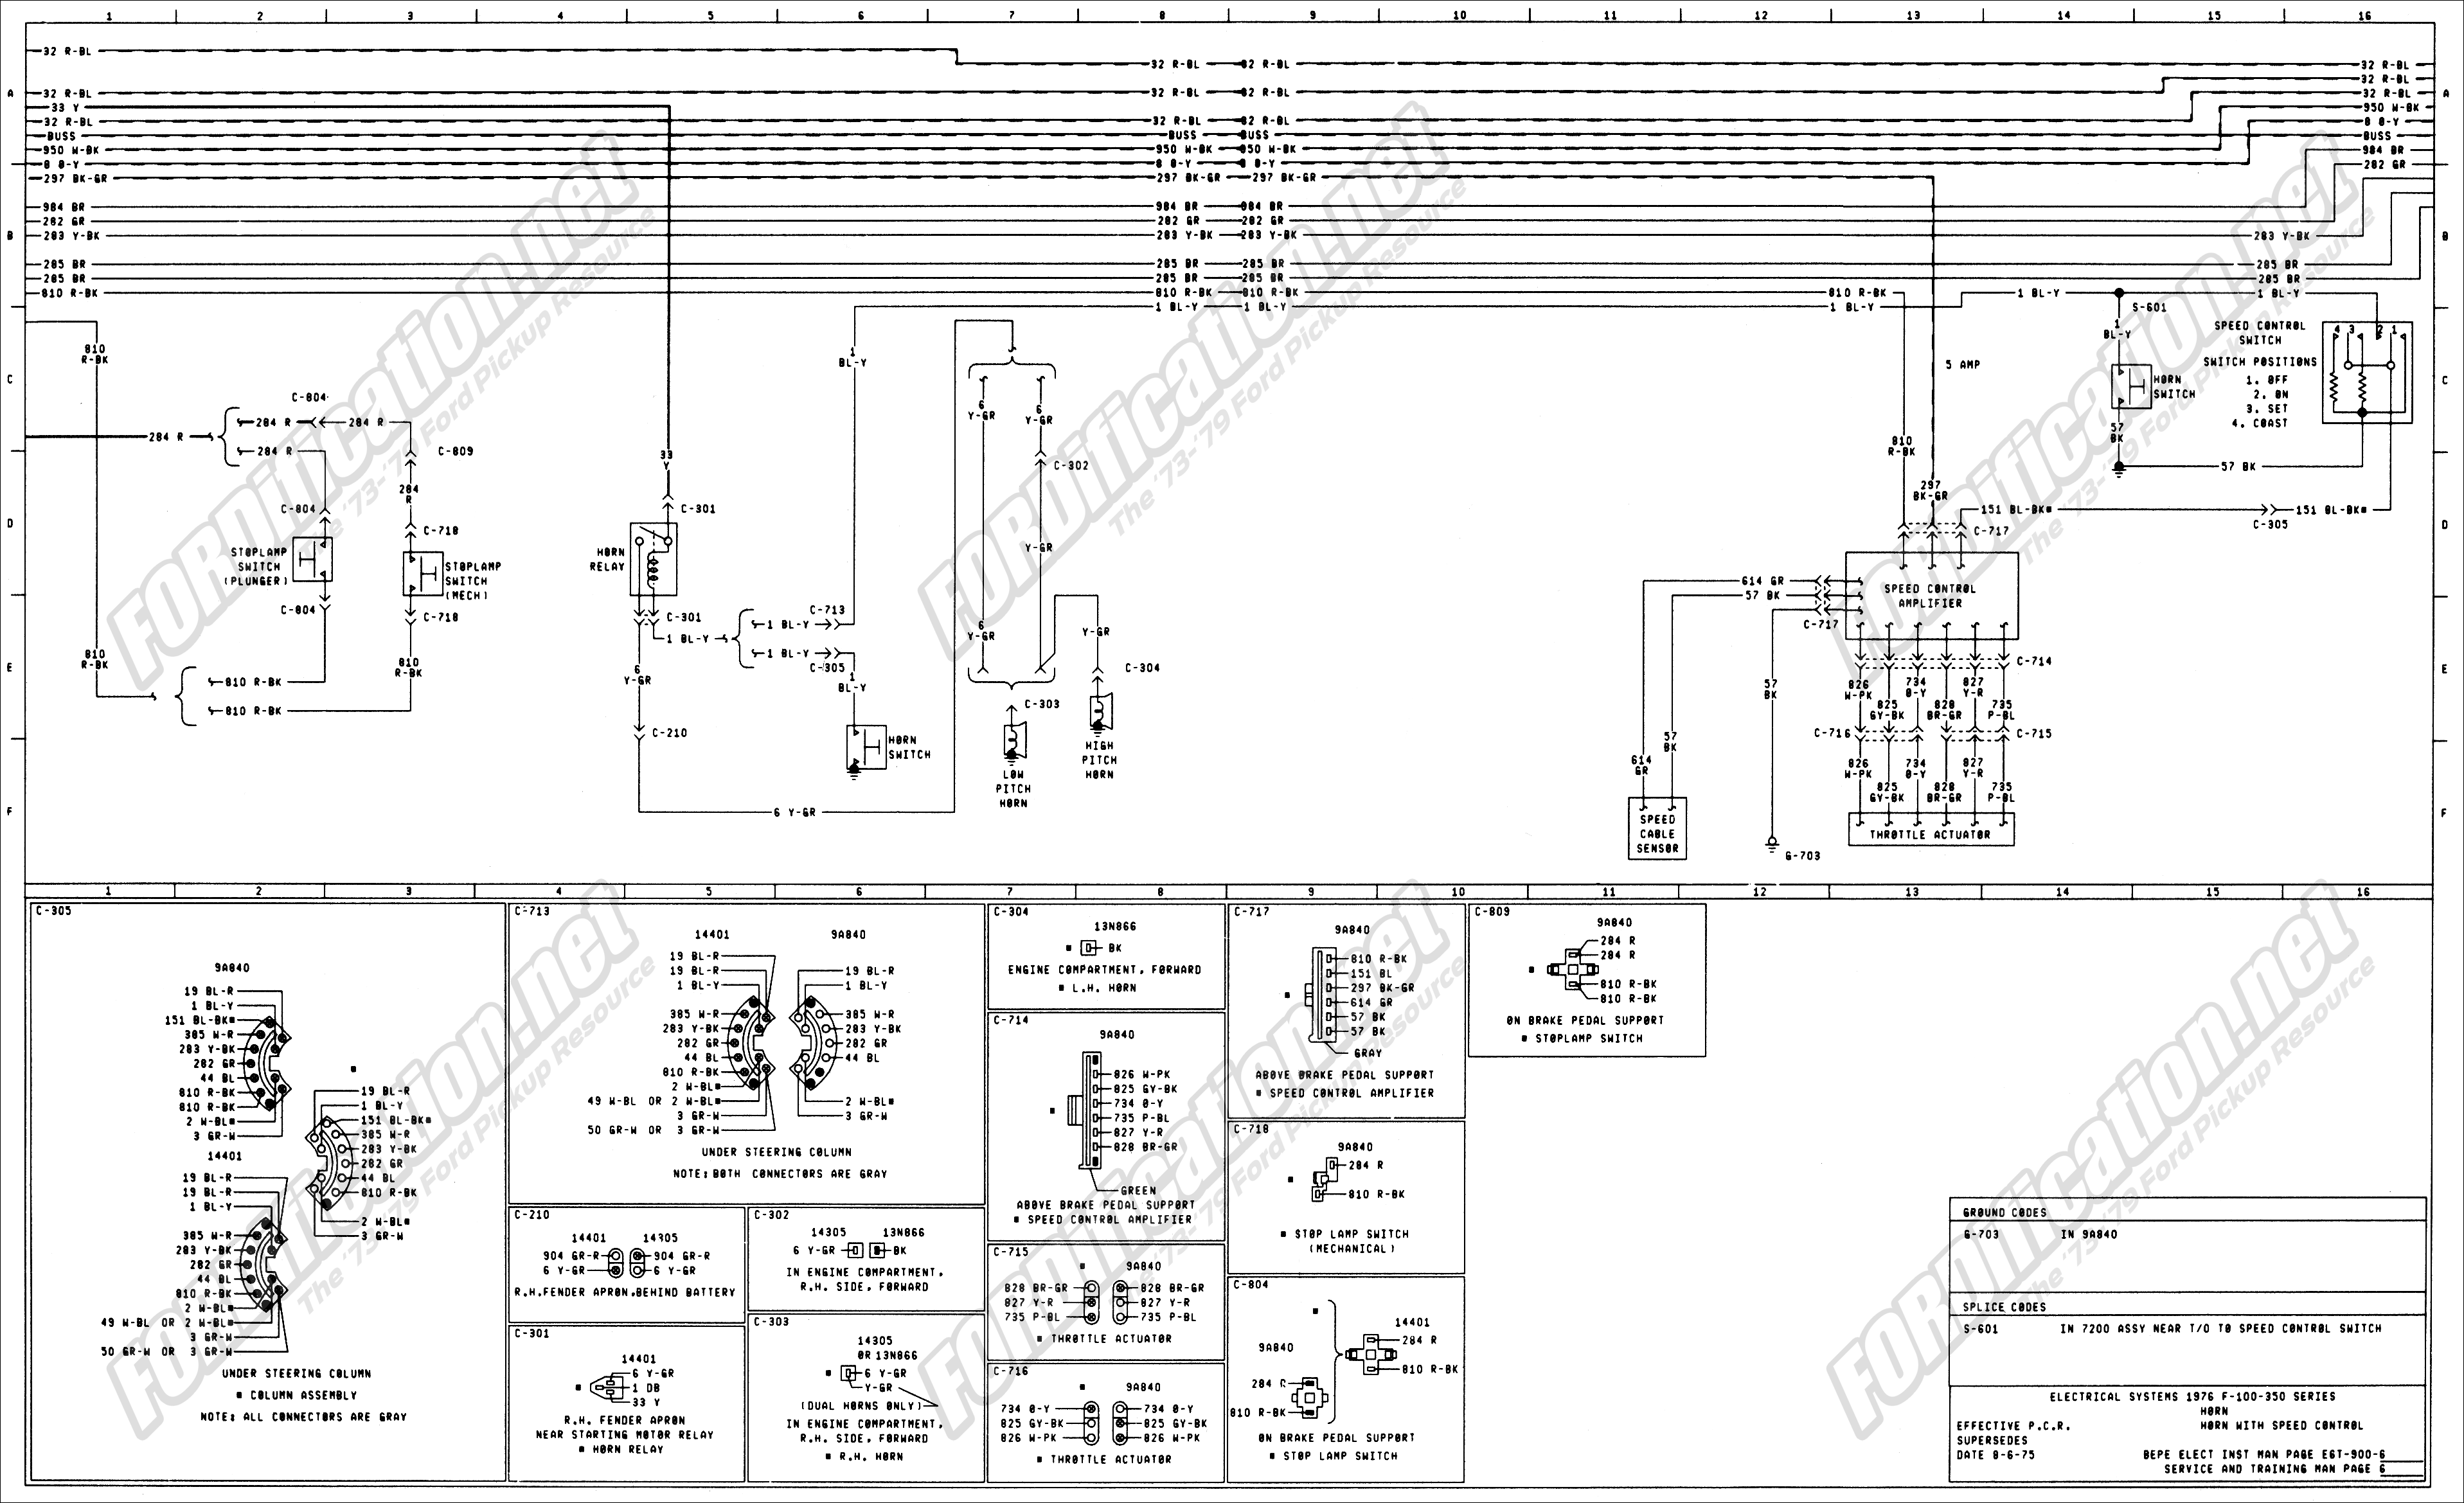 wiring_76master_6of9 1973 1979 ford truck wiring diagrams & schematics fordification net 2008 ford f250 tail light wiring harness at gsmportal.co